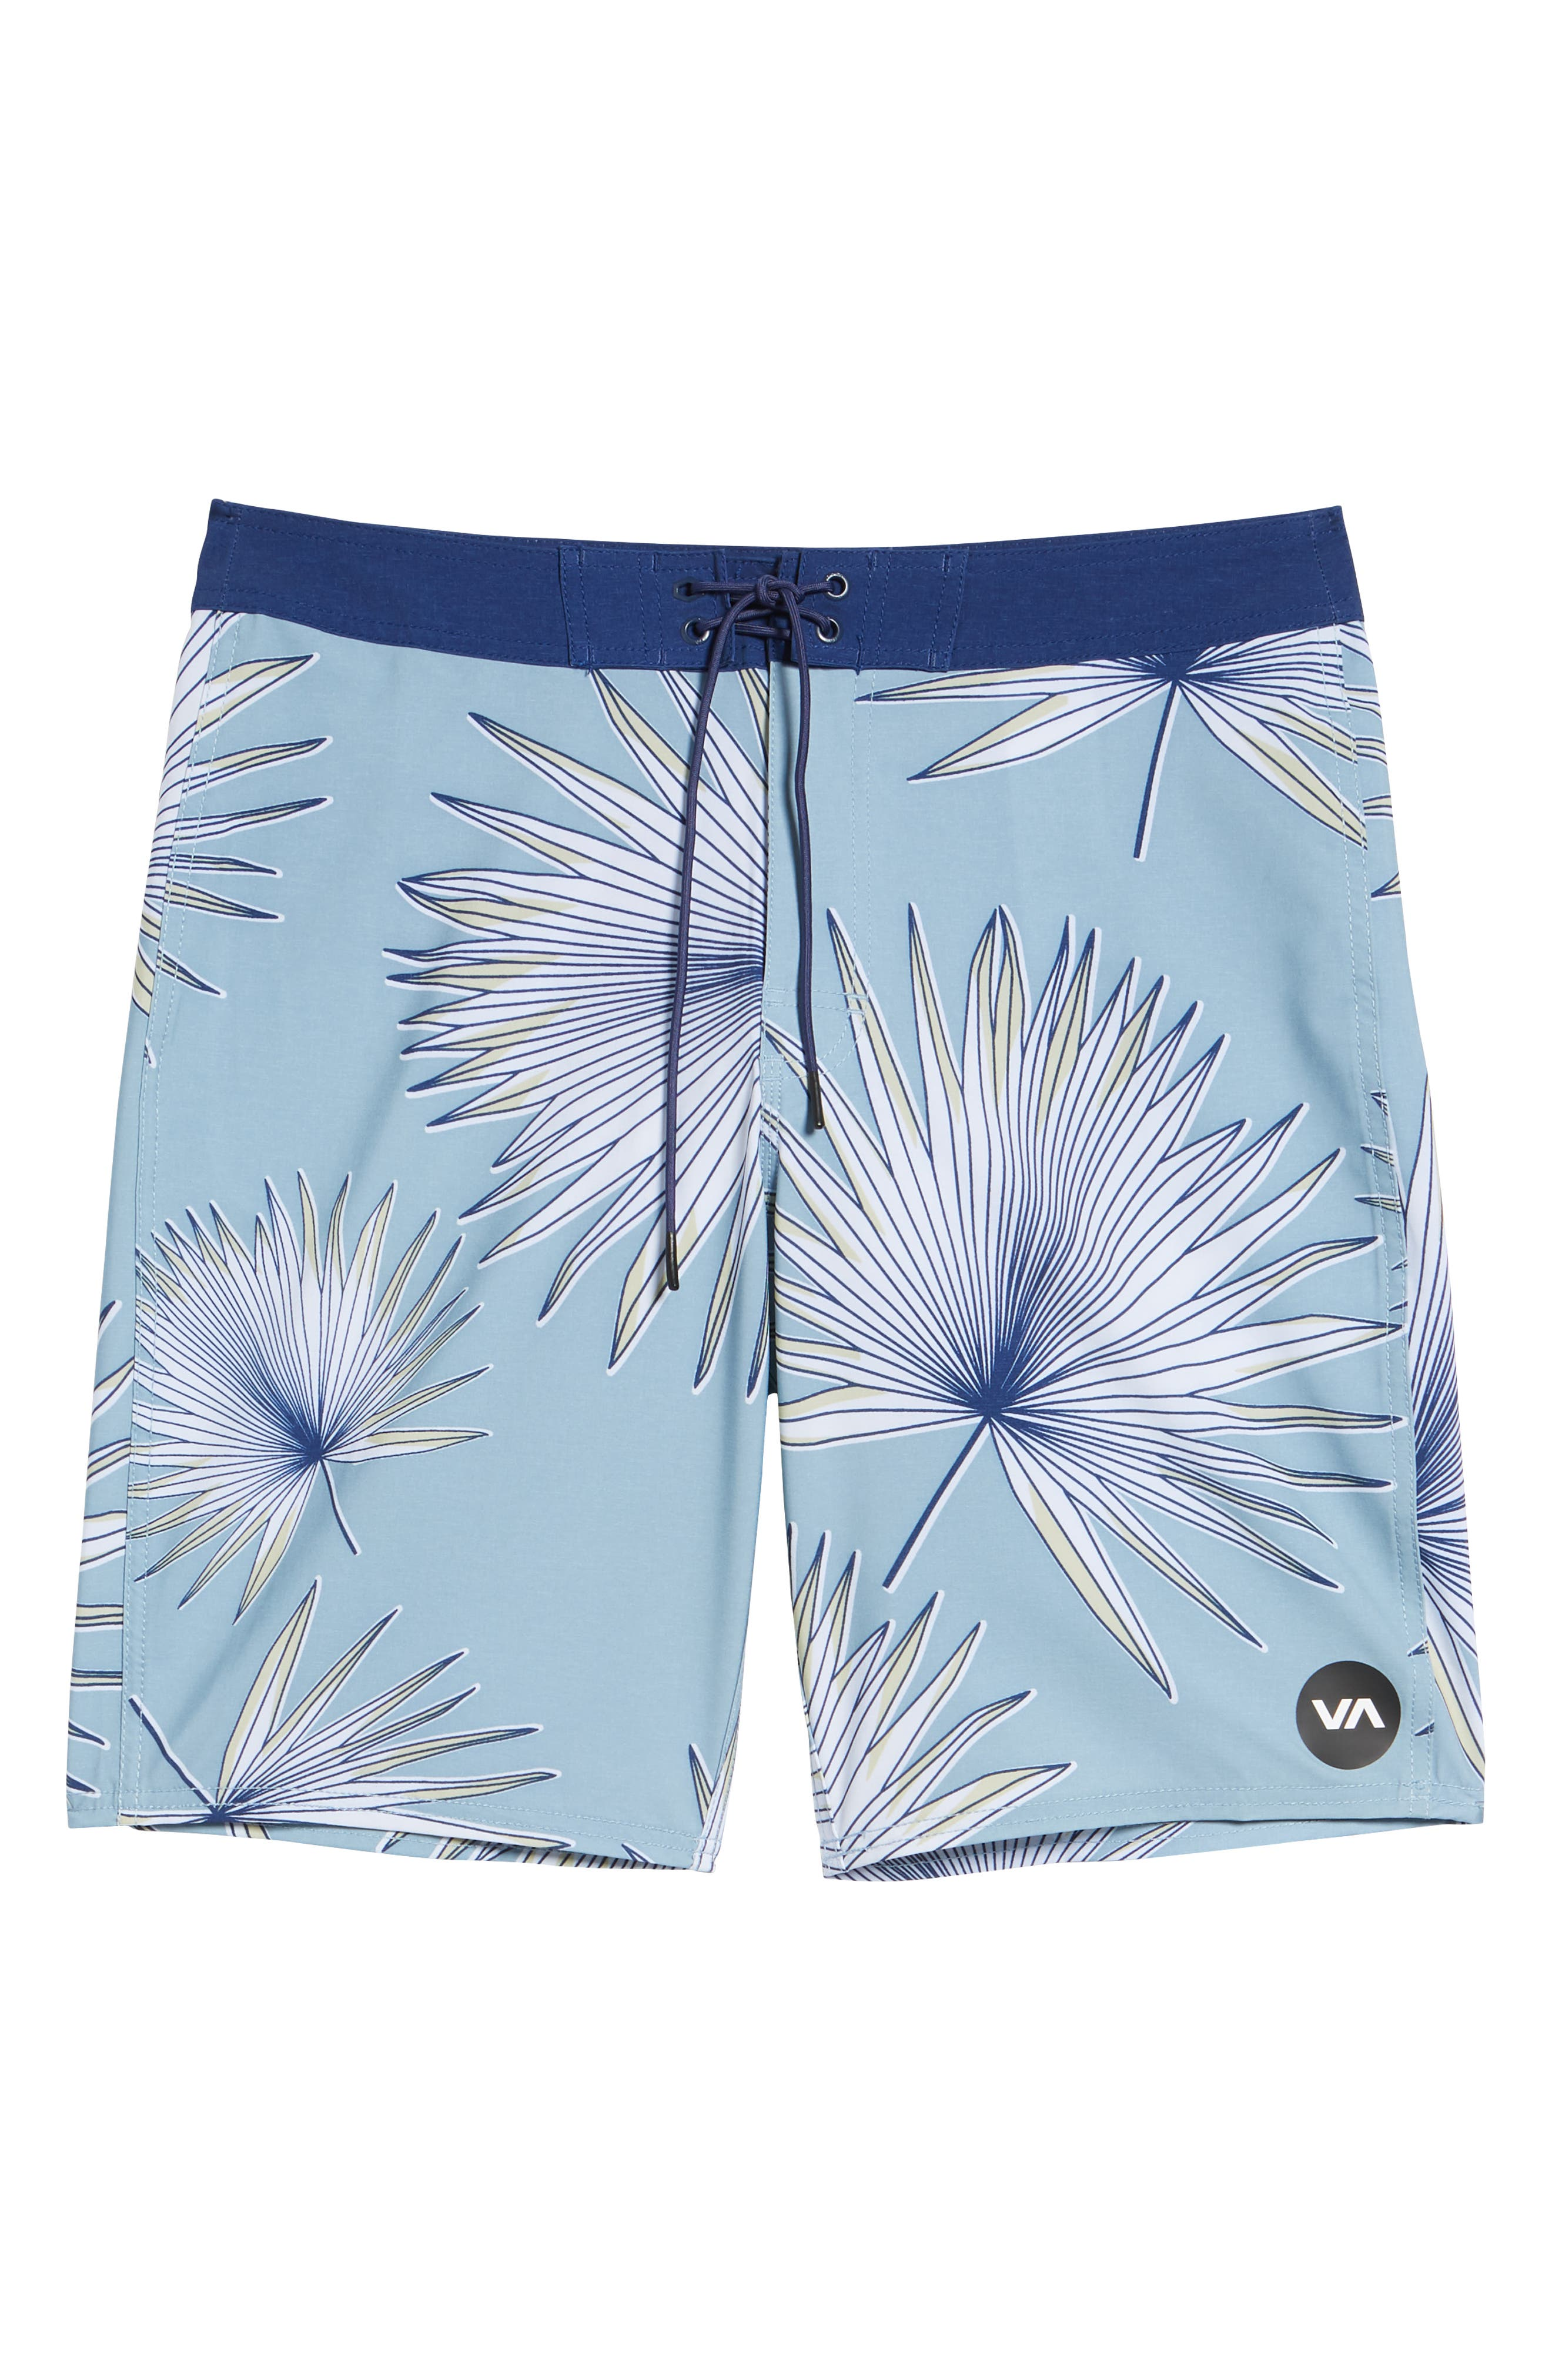 Varca Board Shorts,                             Alternate thumbnail 6, color,                             DUSTY BLUE